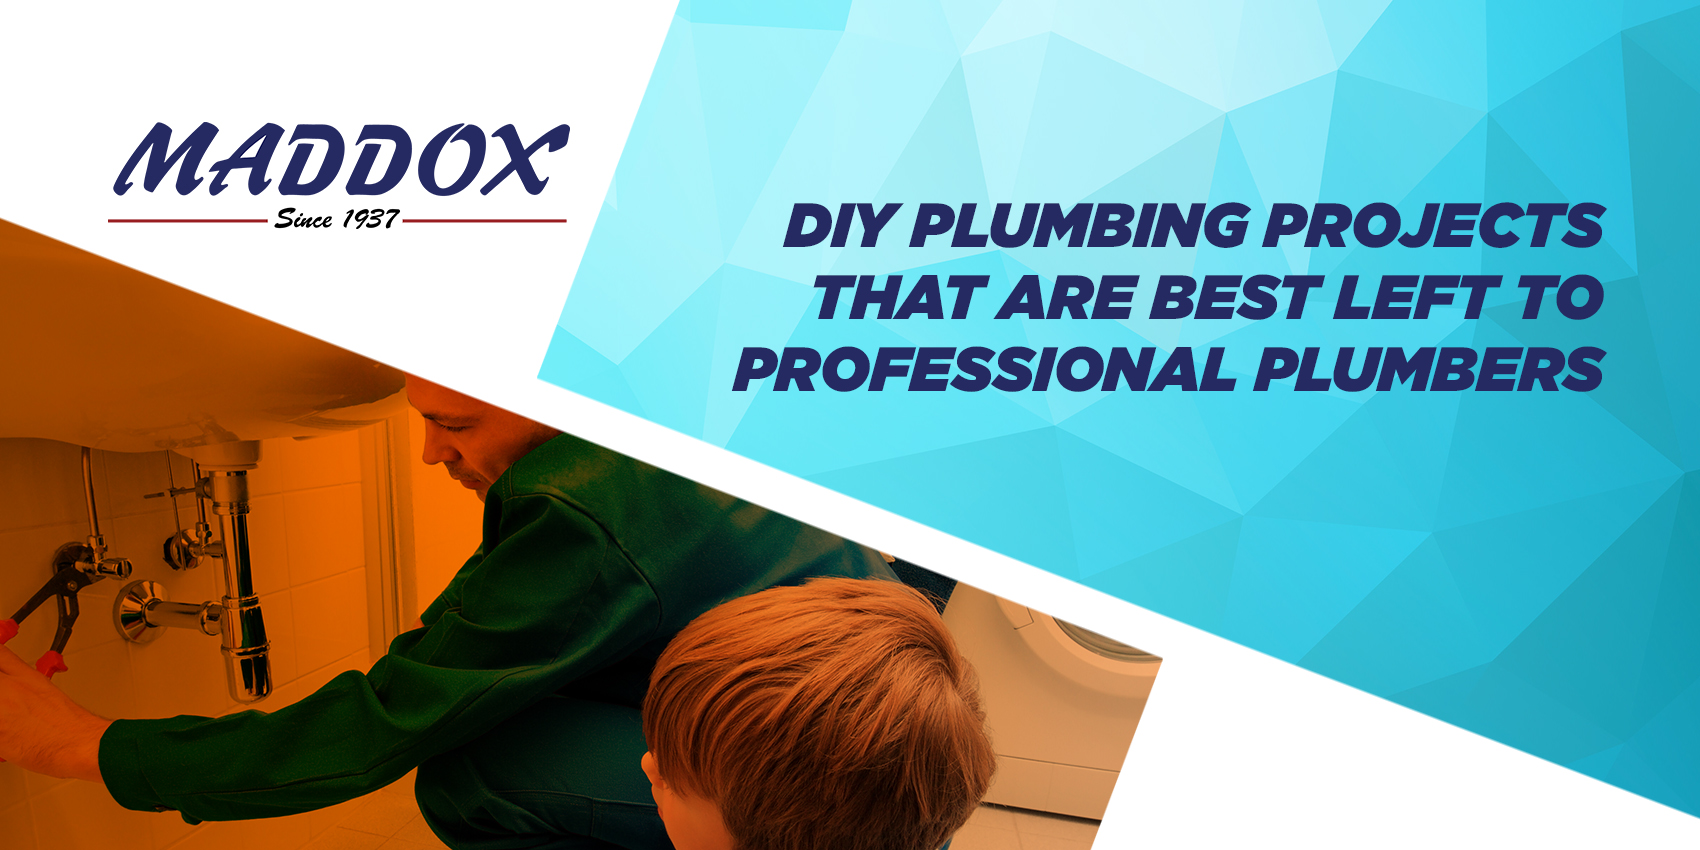 DIY Plumbing Projects That Are Best Left To Professional Plumbers